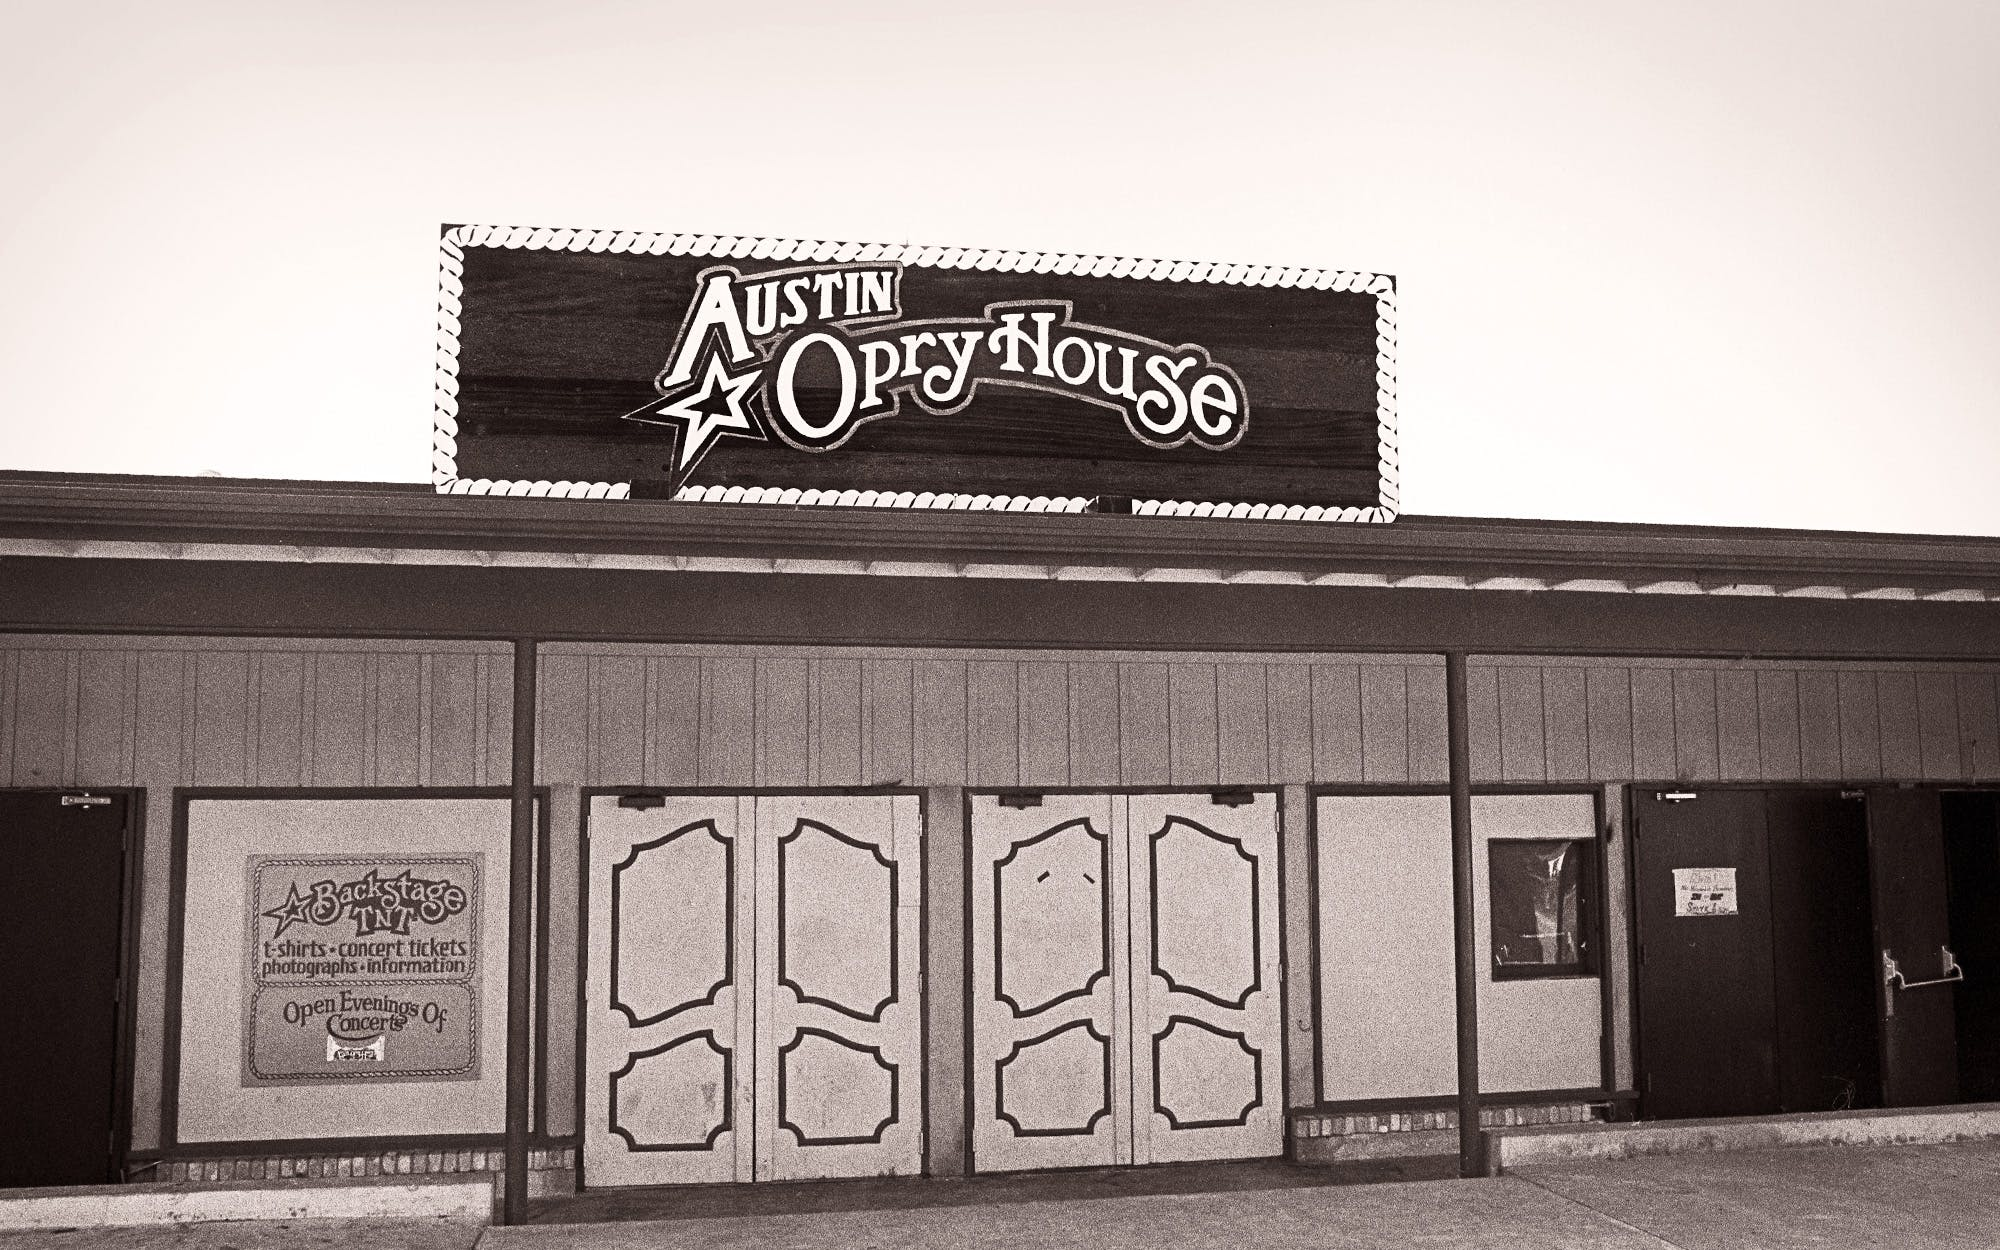 Austin Opry House's exterior